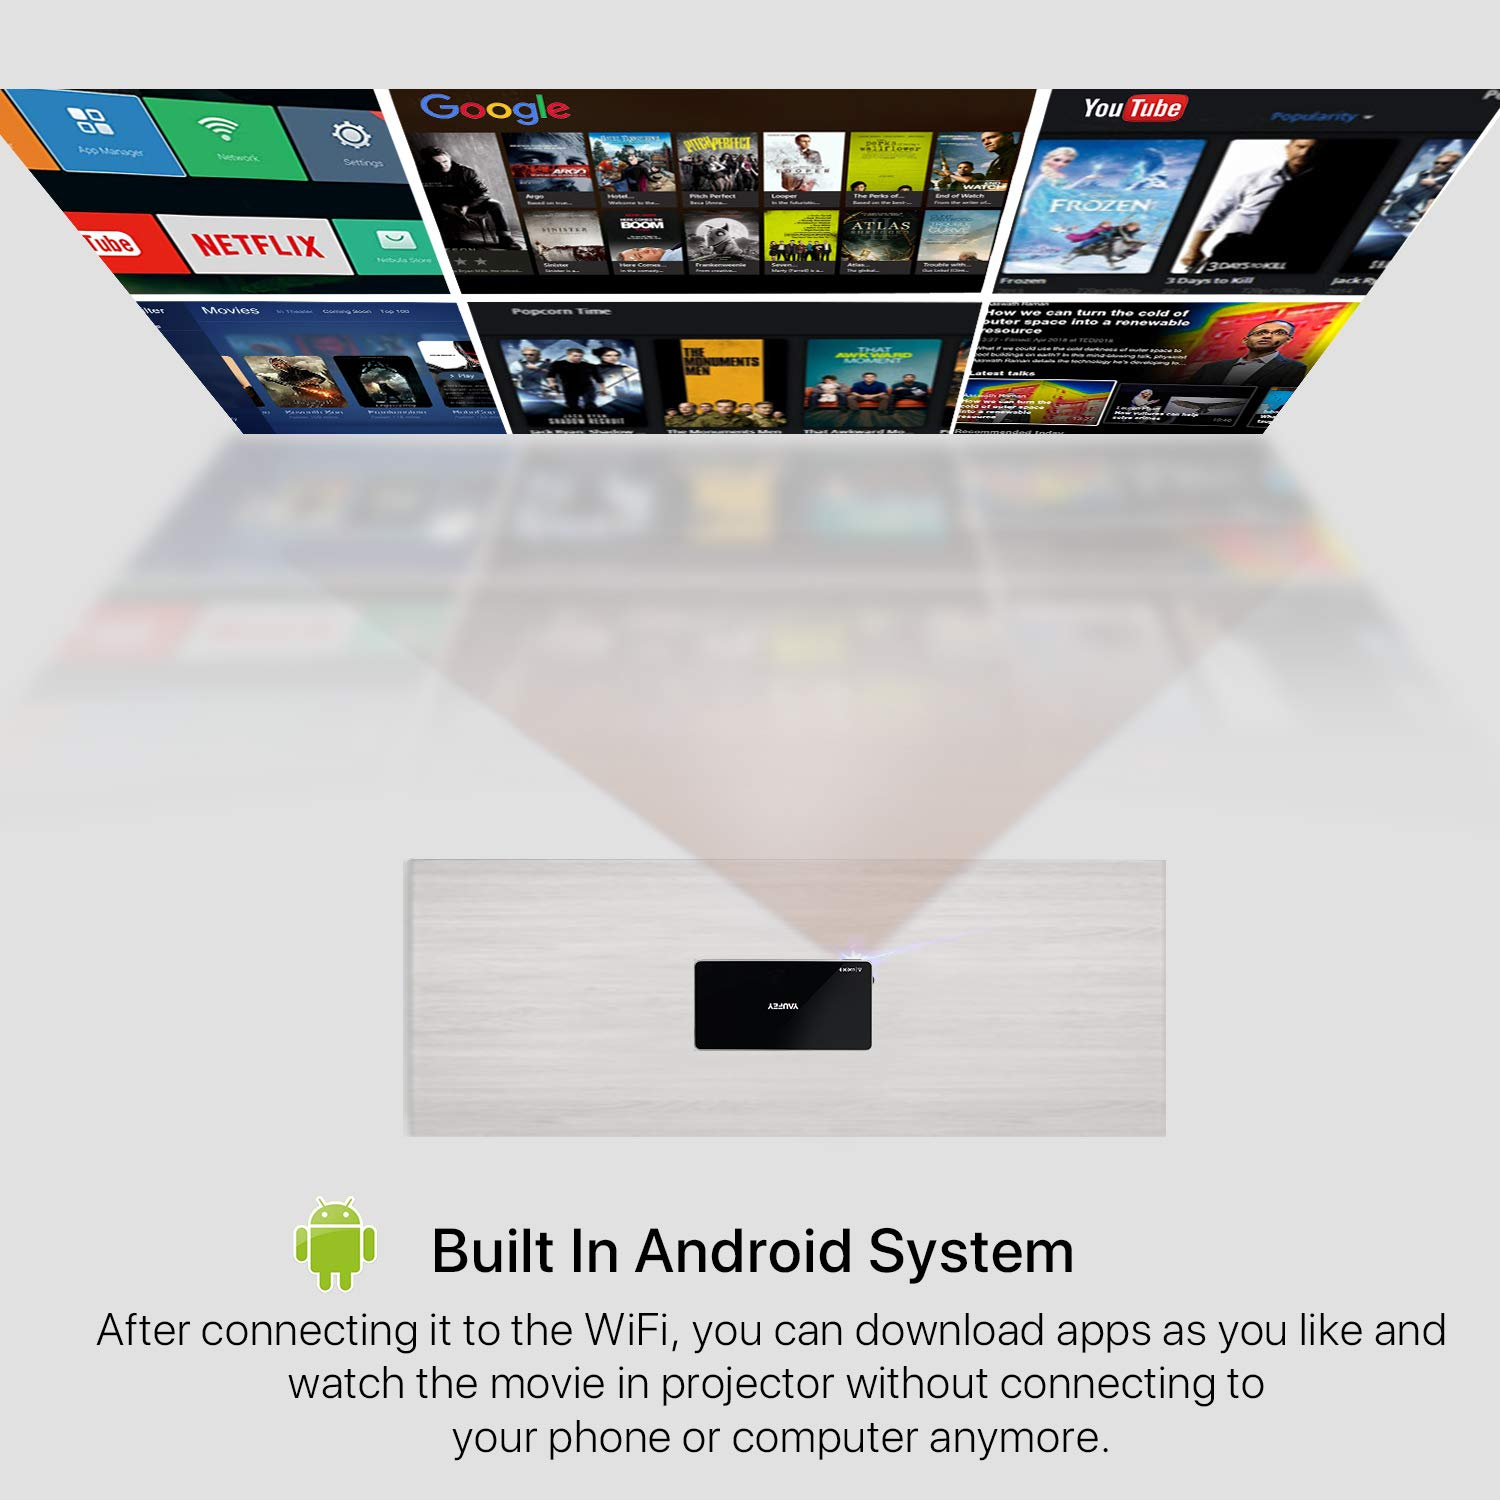 Yaufey Mini Projector, Portable Wireless DLP Projector for Home Video  Cinema With Carrying Bag and Tripod, Built-in Battery Support Android  System,